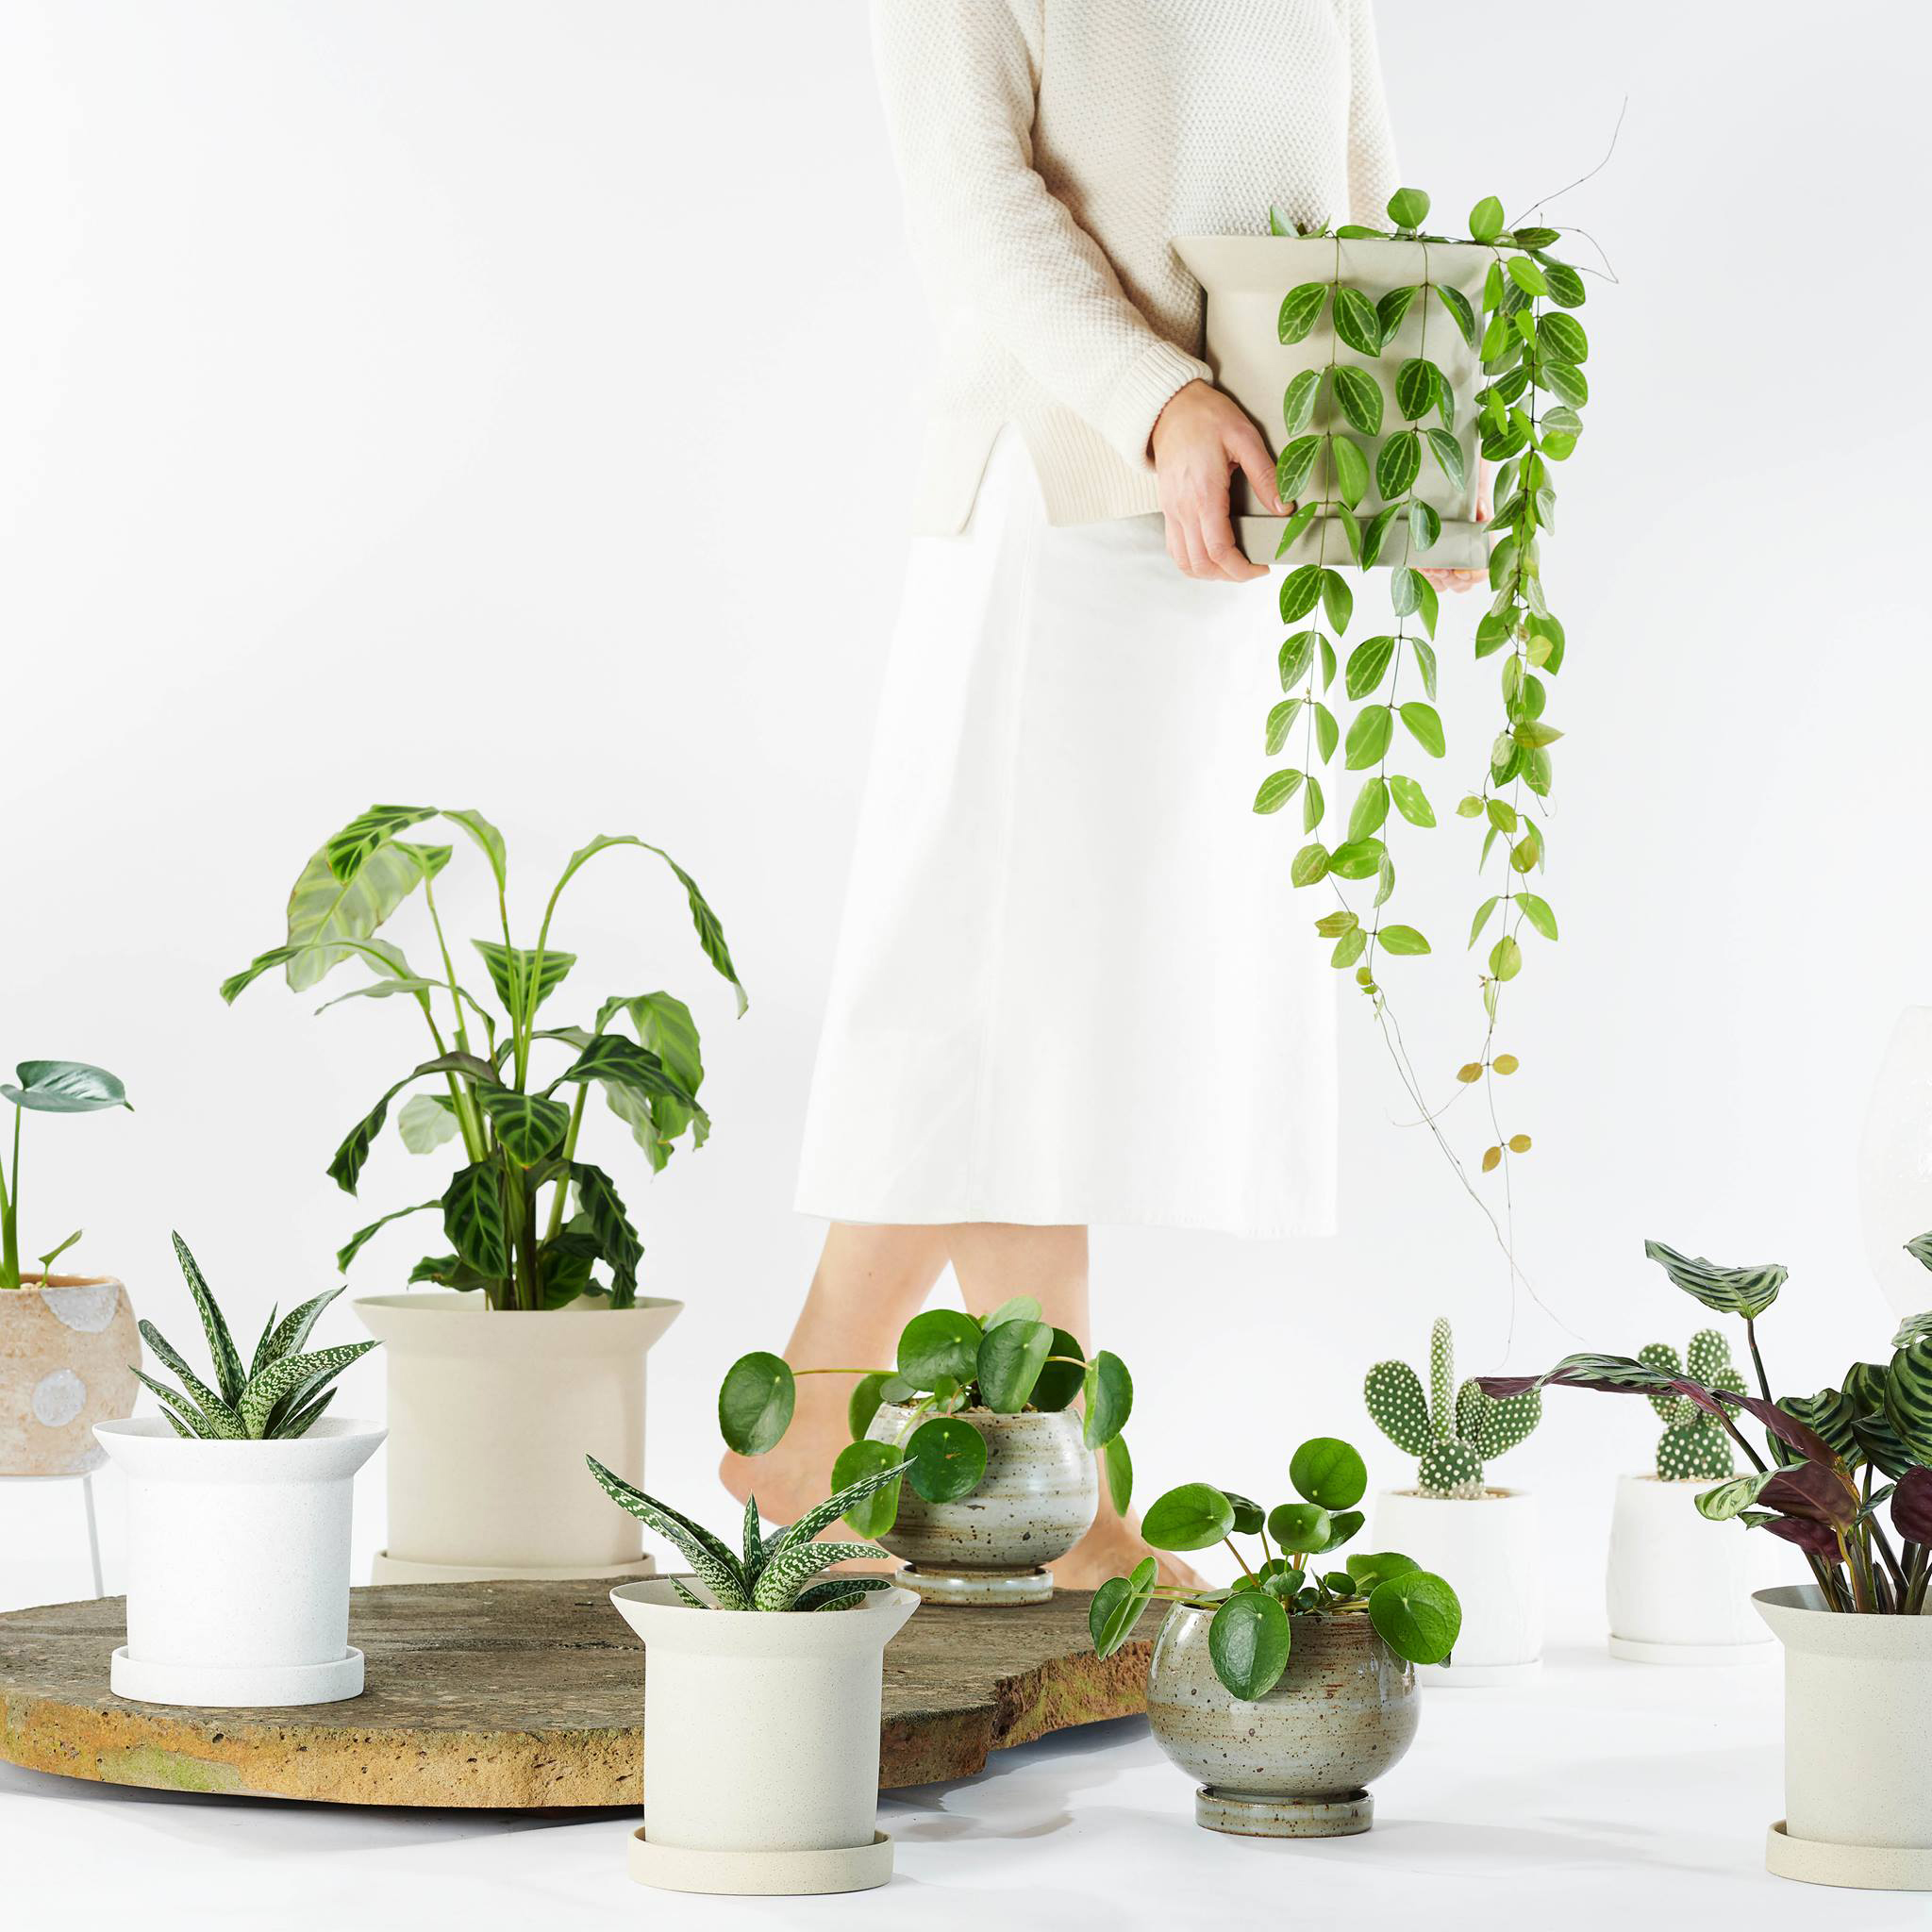 Urban Jungle Bloggers - Cool Plant Pots #urbanjunglebloggers